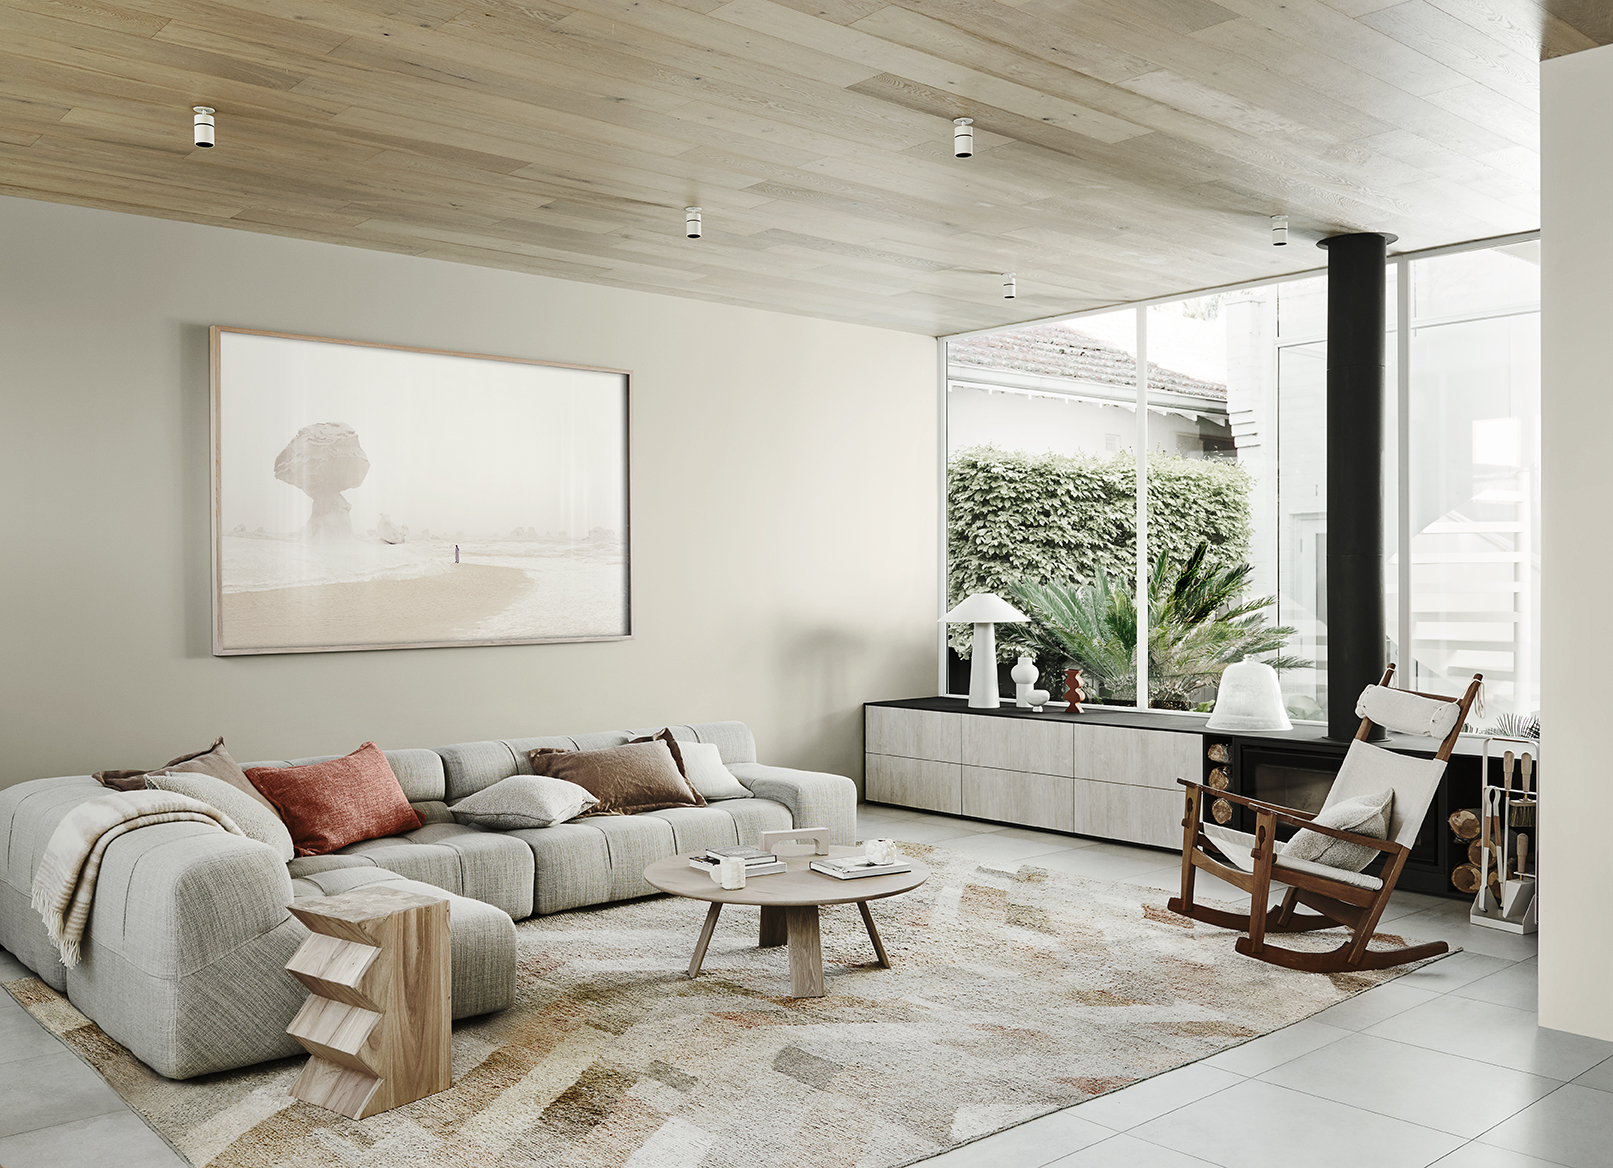 Styling by Bree Leech, Photographer Lisa Cohen.  Wall in Dulux Waitangi, wall in Dulux Sandfly Point Double (right)  Artwork: White Desert - Egypt by Chris Sisarich,  Maker's Mkt ;